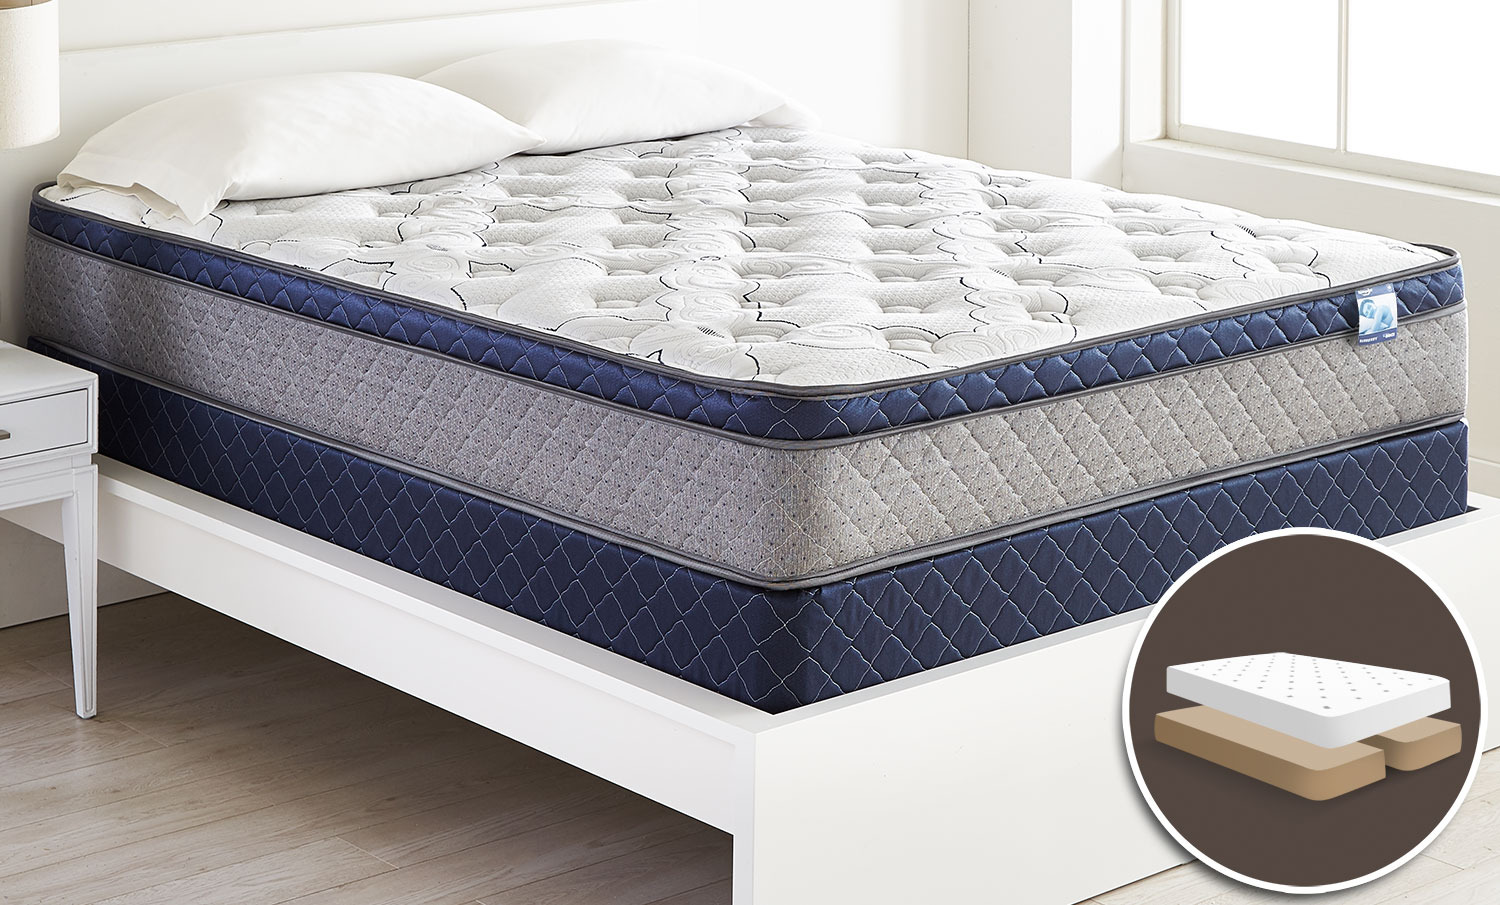 Mattresses and Bedding - Springwall Burberry Euro-Top Firm Queen Mattress and Split Boxspring Set